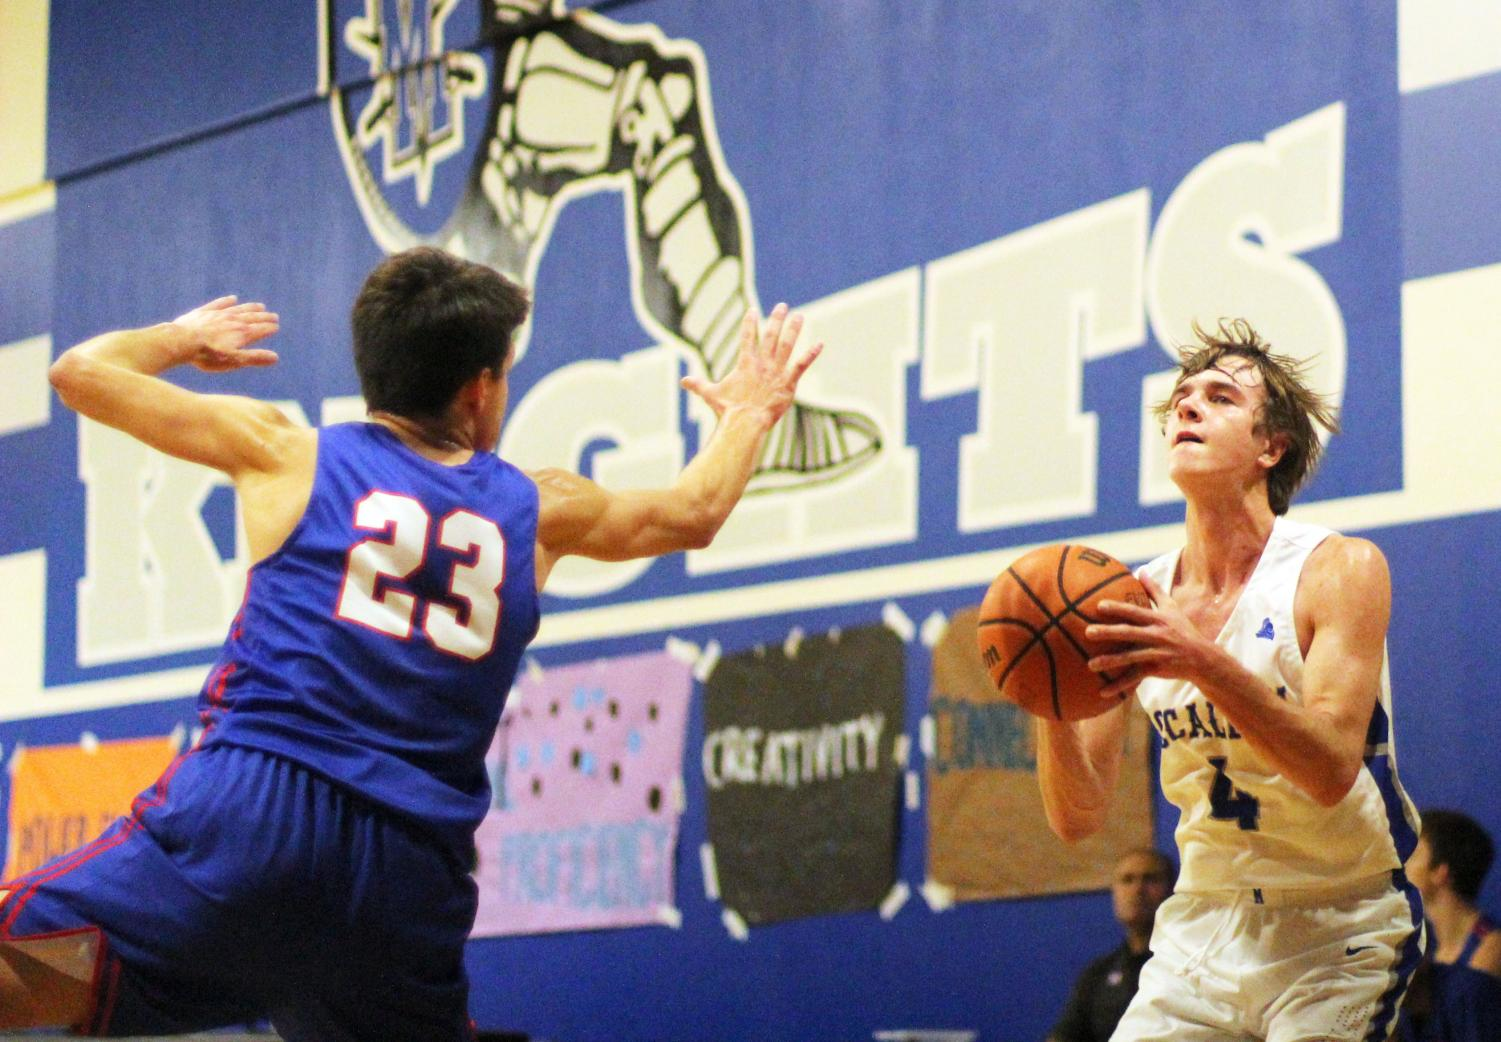 "Junior Sam Werkenthin sets up a shot during McCallum's 56-47 loss to Hays on Nov. 13 at home. Shooting is something Werkenthin has done a lot of this year as he is one of only two returning players from last year's varsity team. ""This year my role has definitely changed. Since me and Norman are the only [players] who have experience playing varsity, [my role is to be] a scorer and a leader."" Photo by Risa Darlington-Horta."